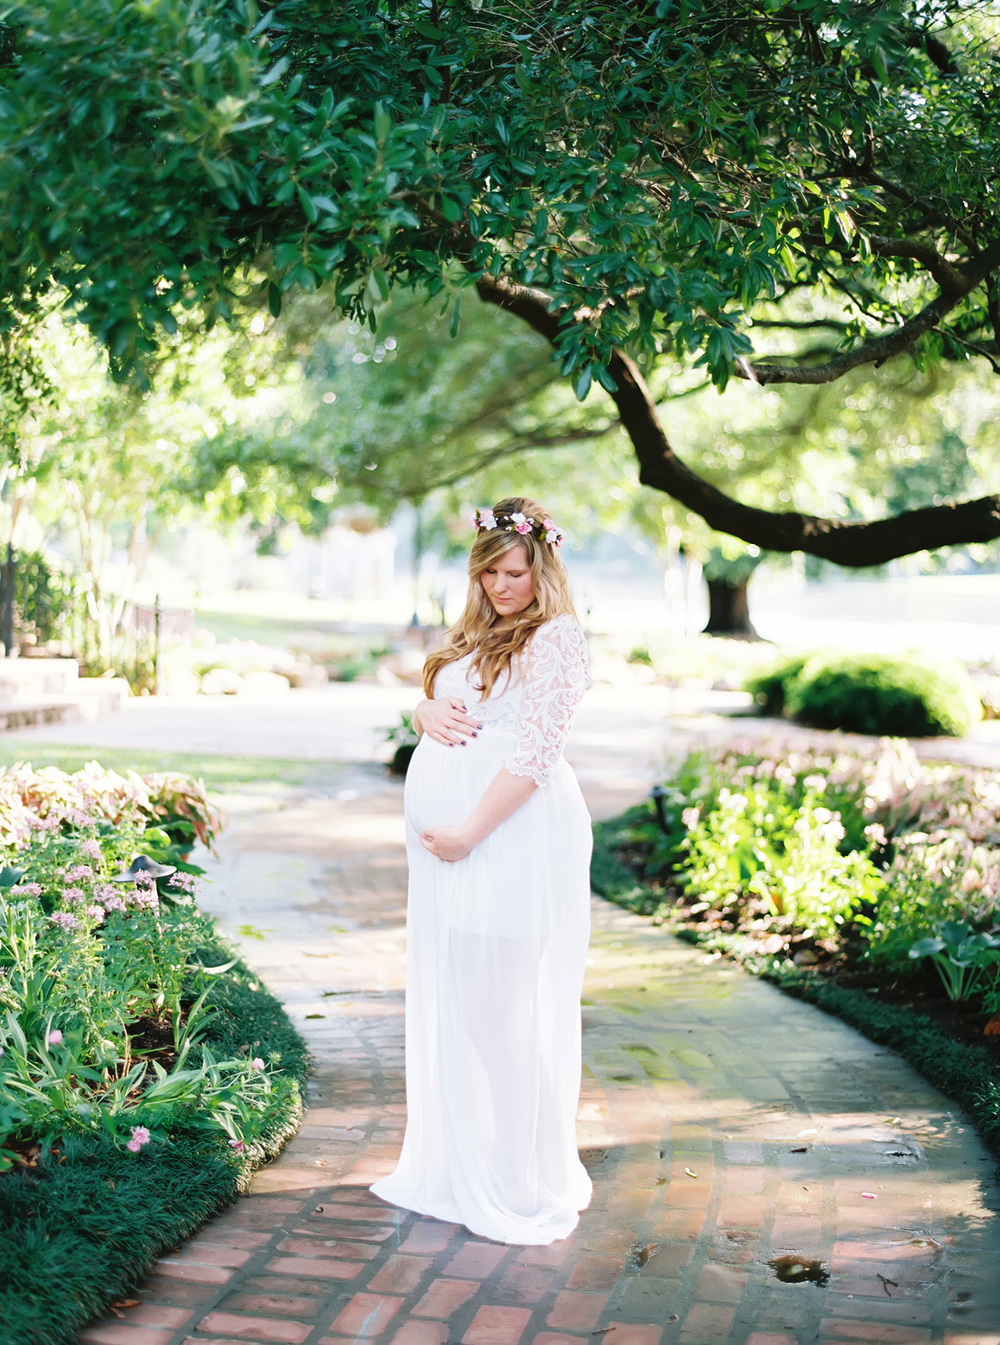 Wendi beau jardin maternity natchitoches louisiana for Beau jardin